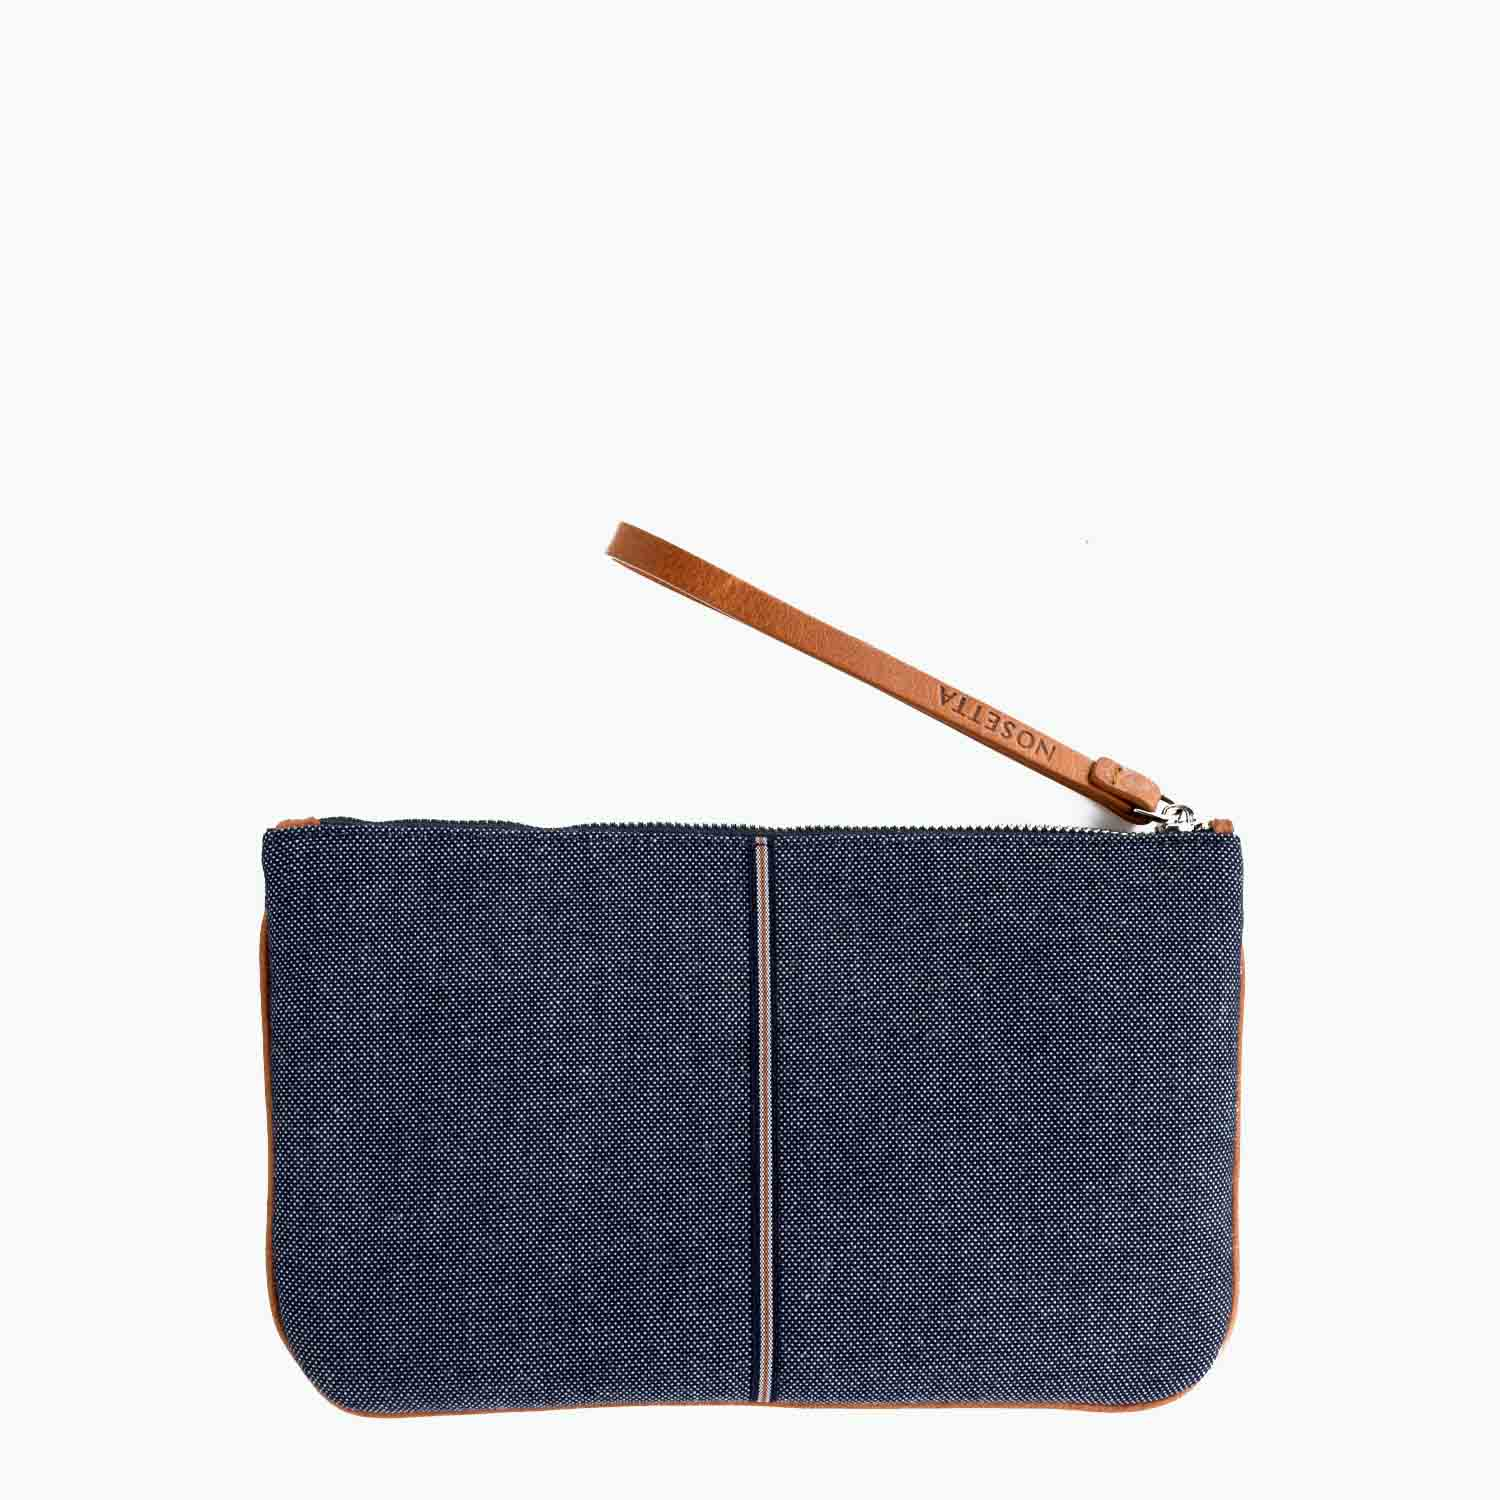 Gallia Clutch Denim and Leather - Nosetta